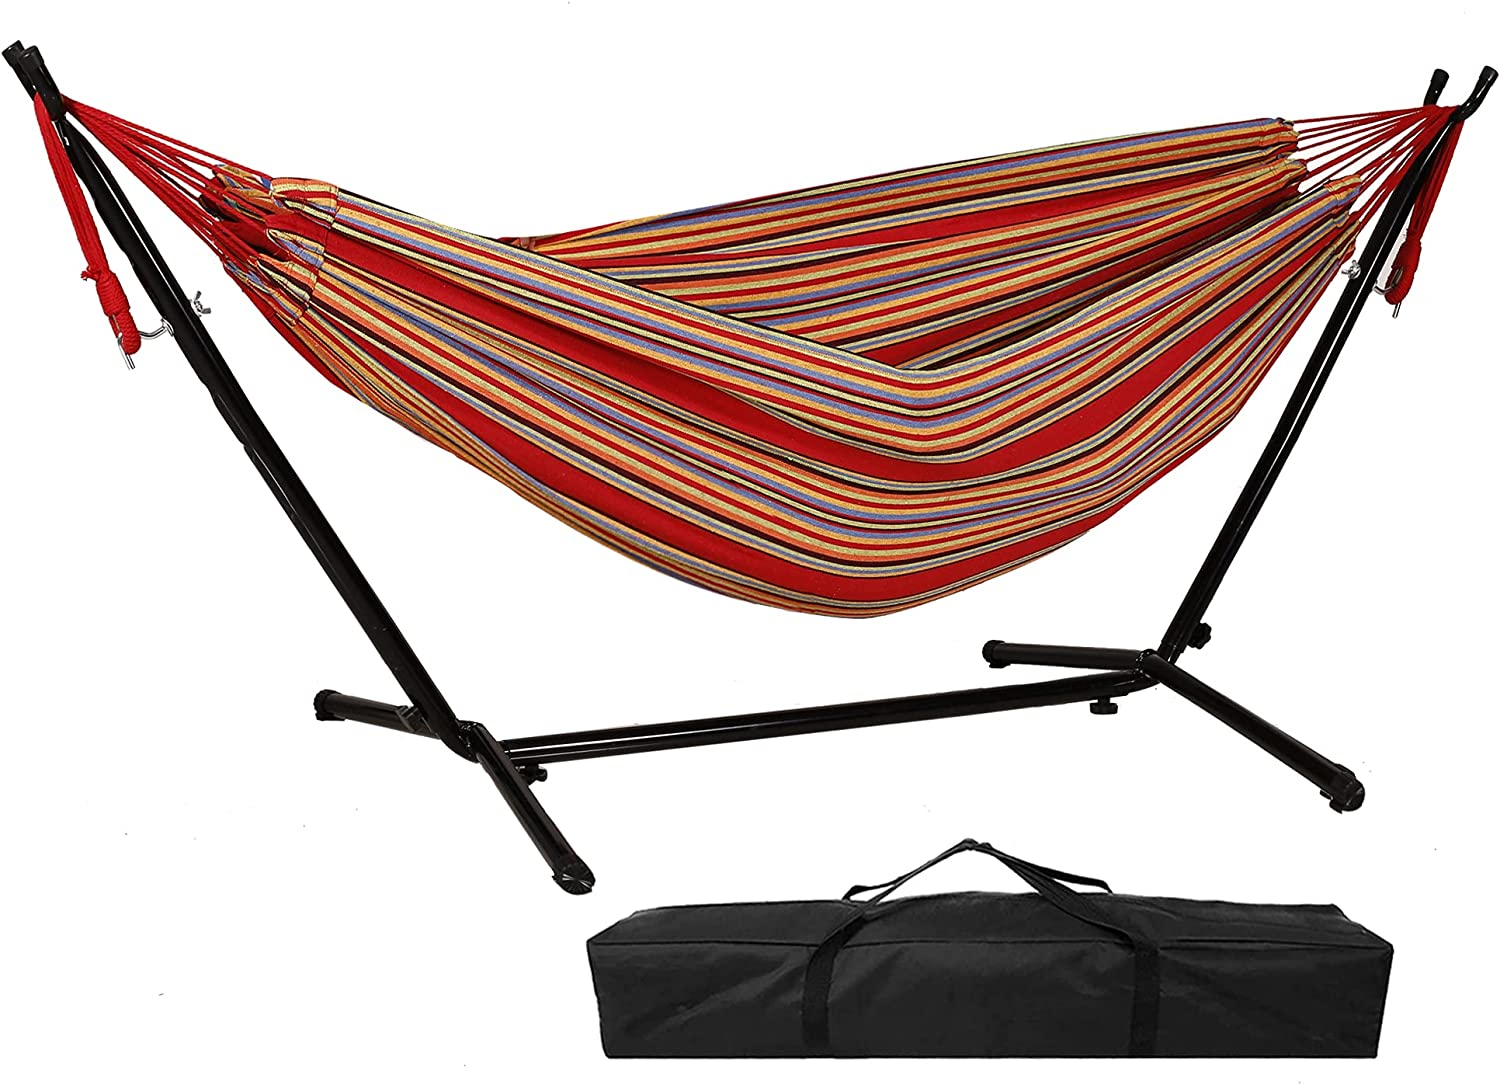 Hammock San Francisco Mall with Discount mail order Stand Portable Double Outd Indoor Patio for